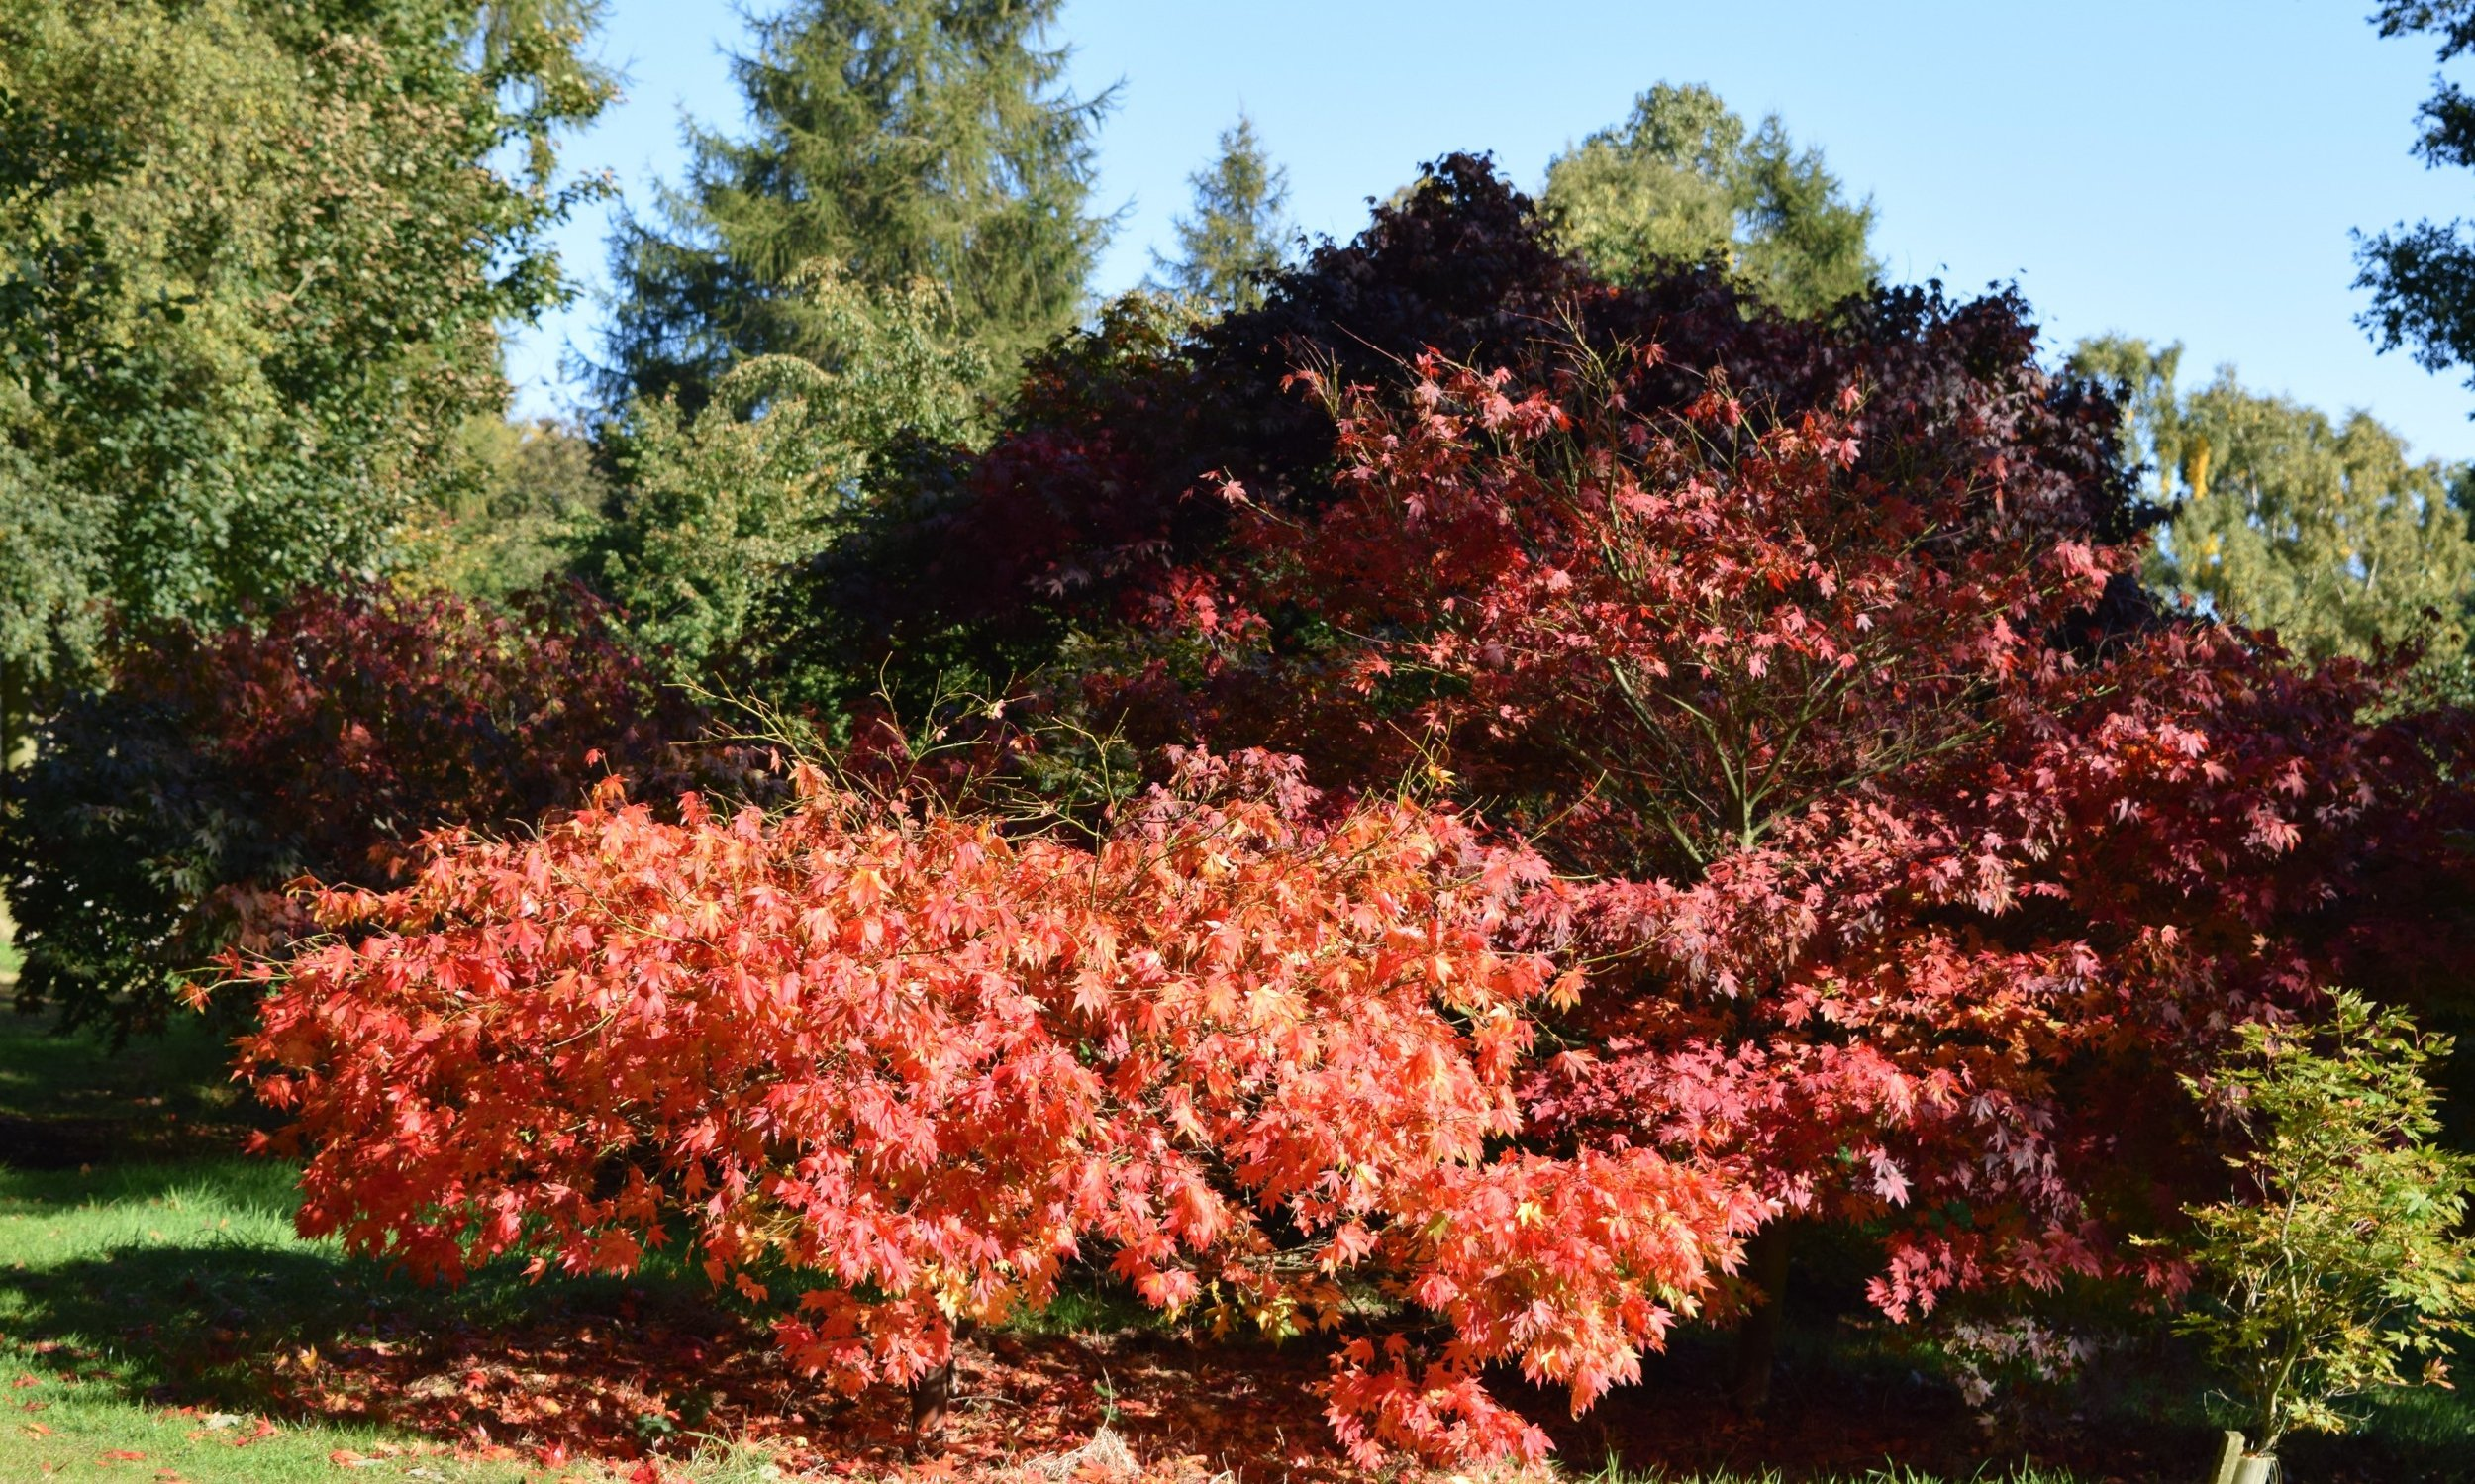 Glorious Autumn Colour at the Yorkshire Arboretum - October 2015